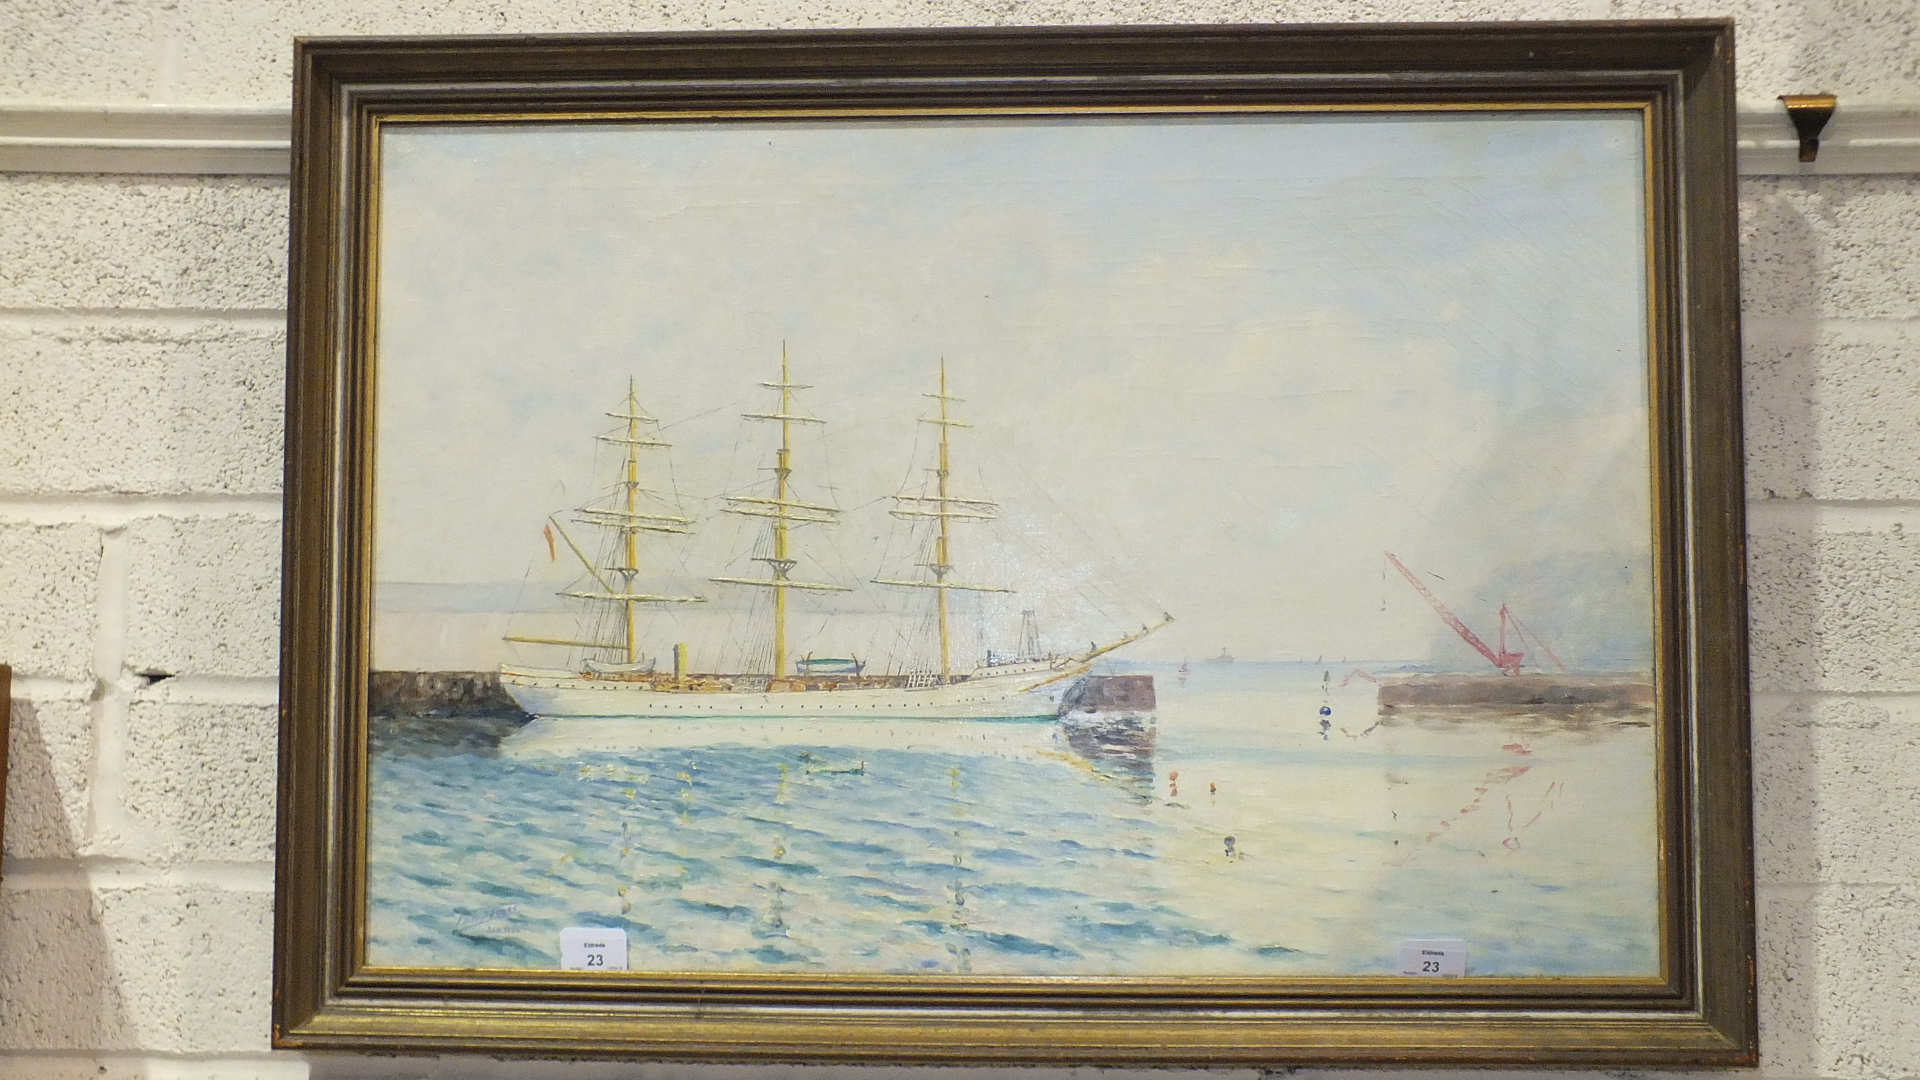 Lot 23 - Phillip Fooks, 'Training Ship Danmark at Millbay Docks, Plymouth', a signed oil on canvas dated